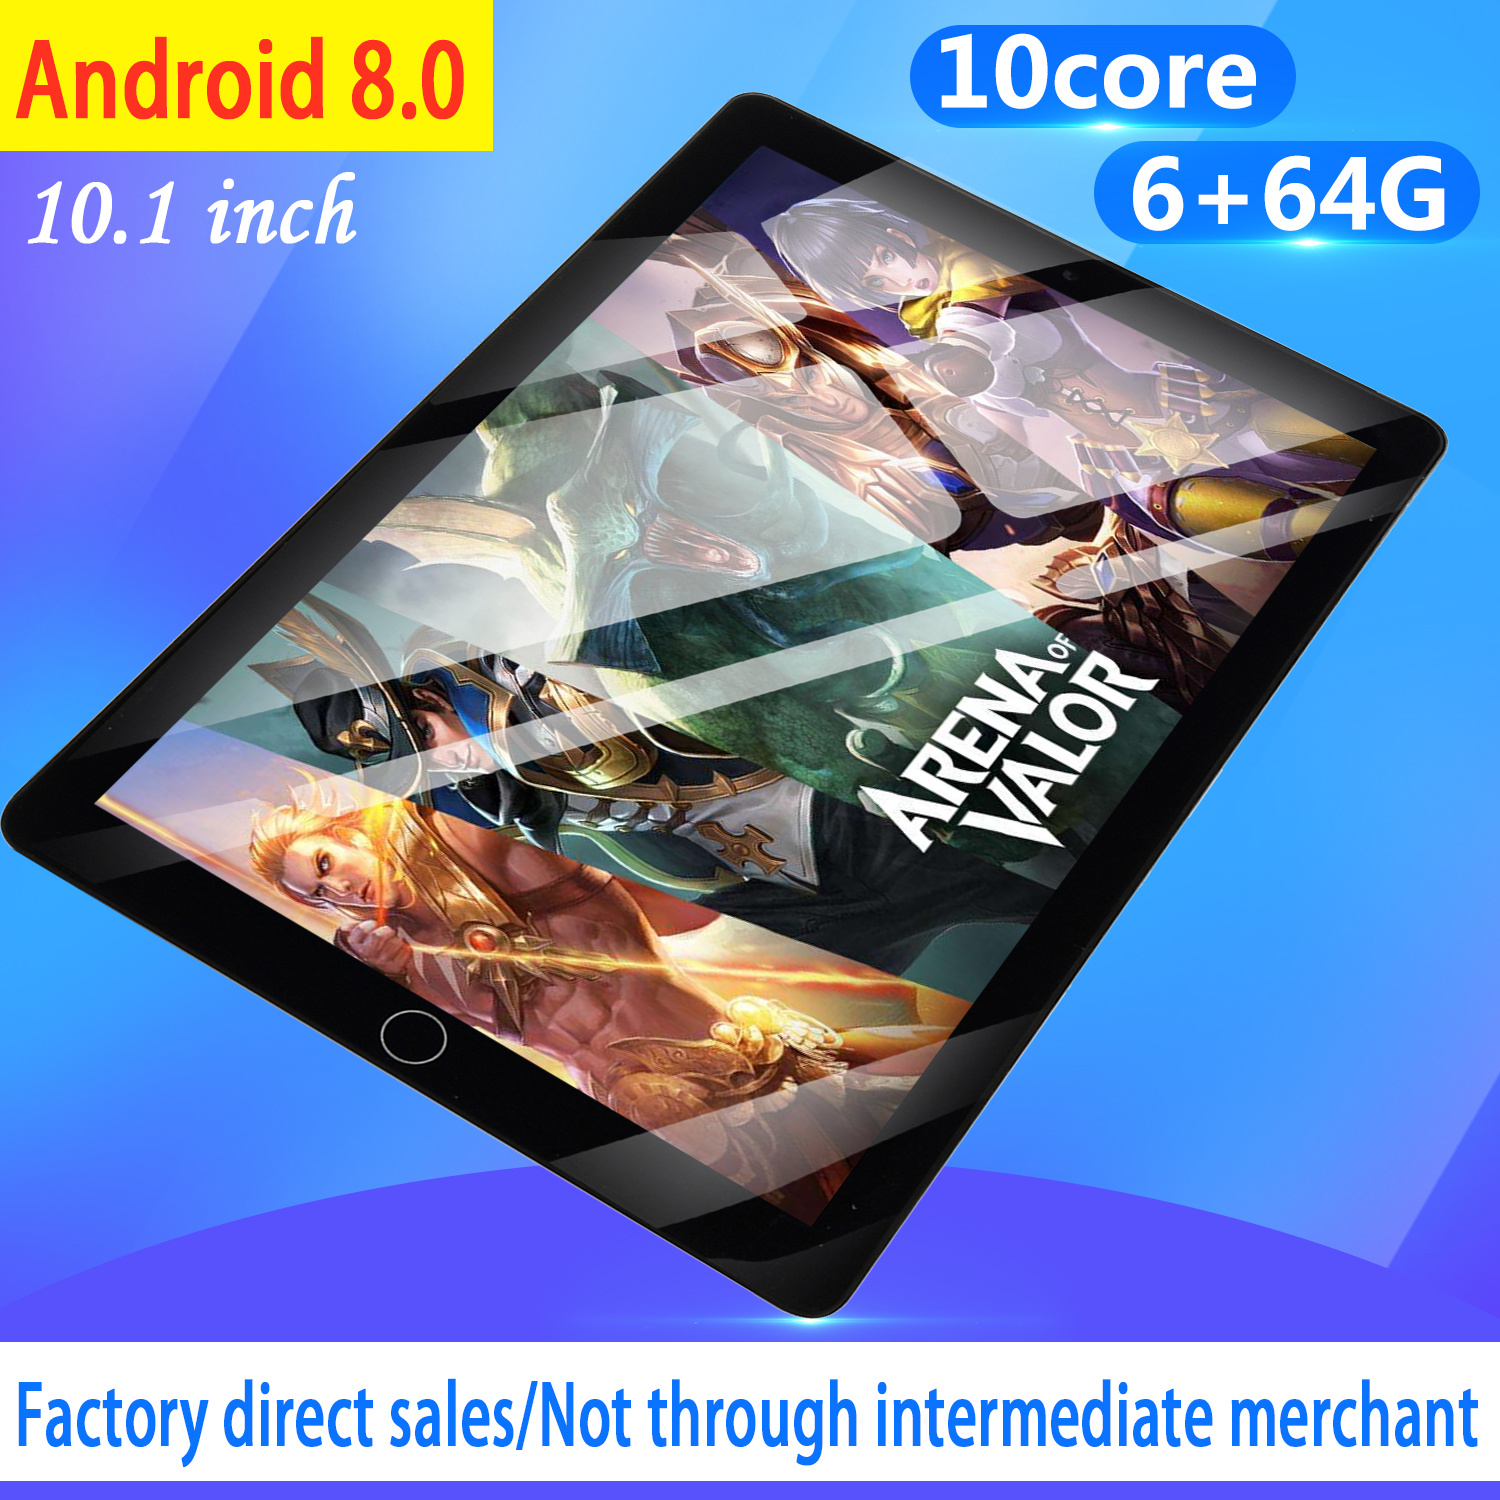 2020 WiFi Tablet PC Screen 10 Inch Ten Core 6G+64G Android 8.0 Dual SIM Dual Camera Tablet GPS Phone Pad